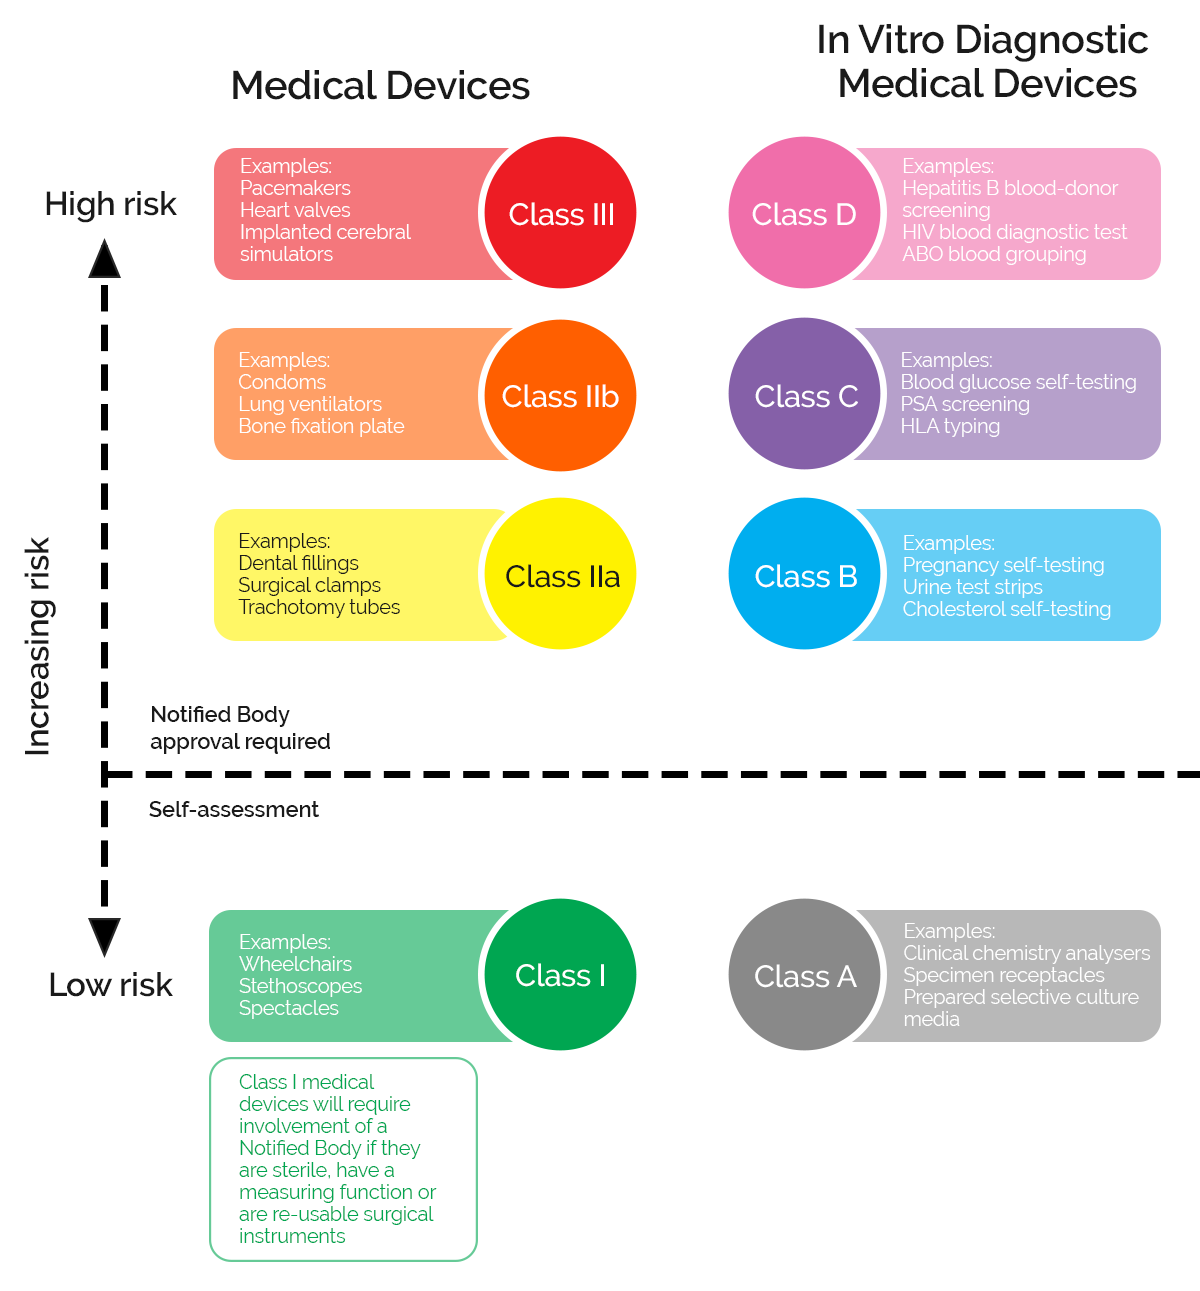 mhra-medical device